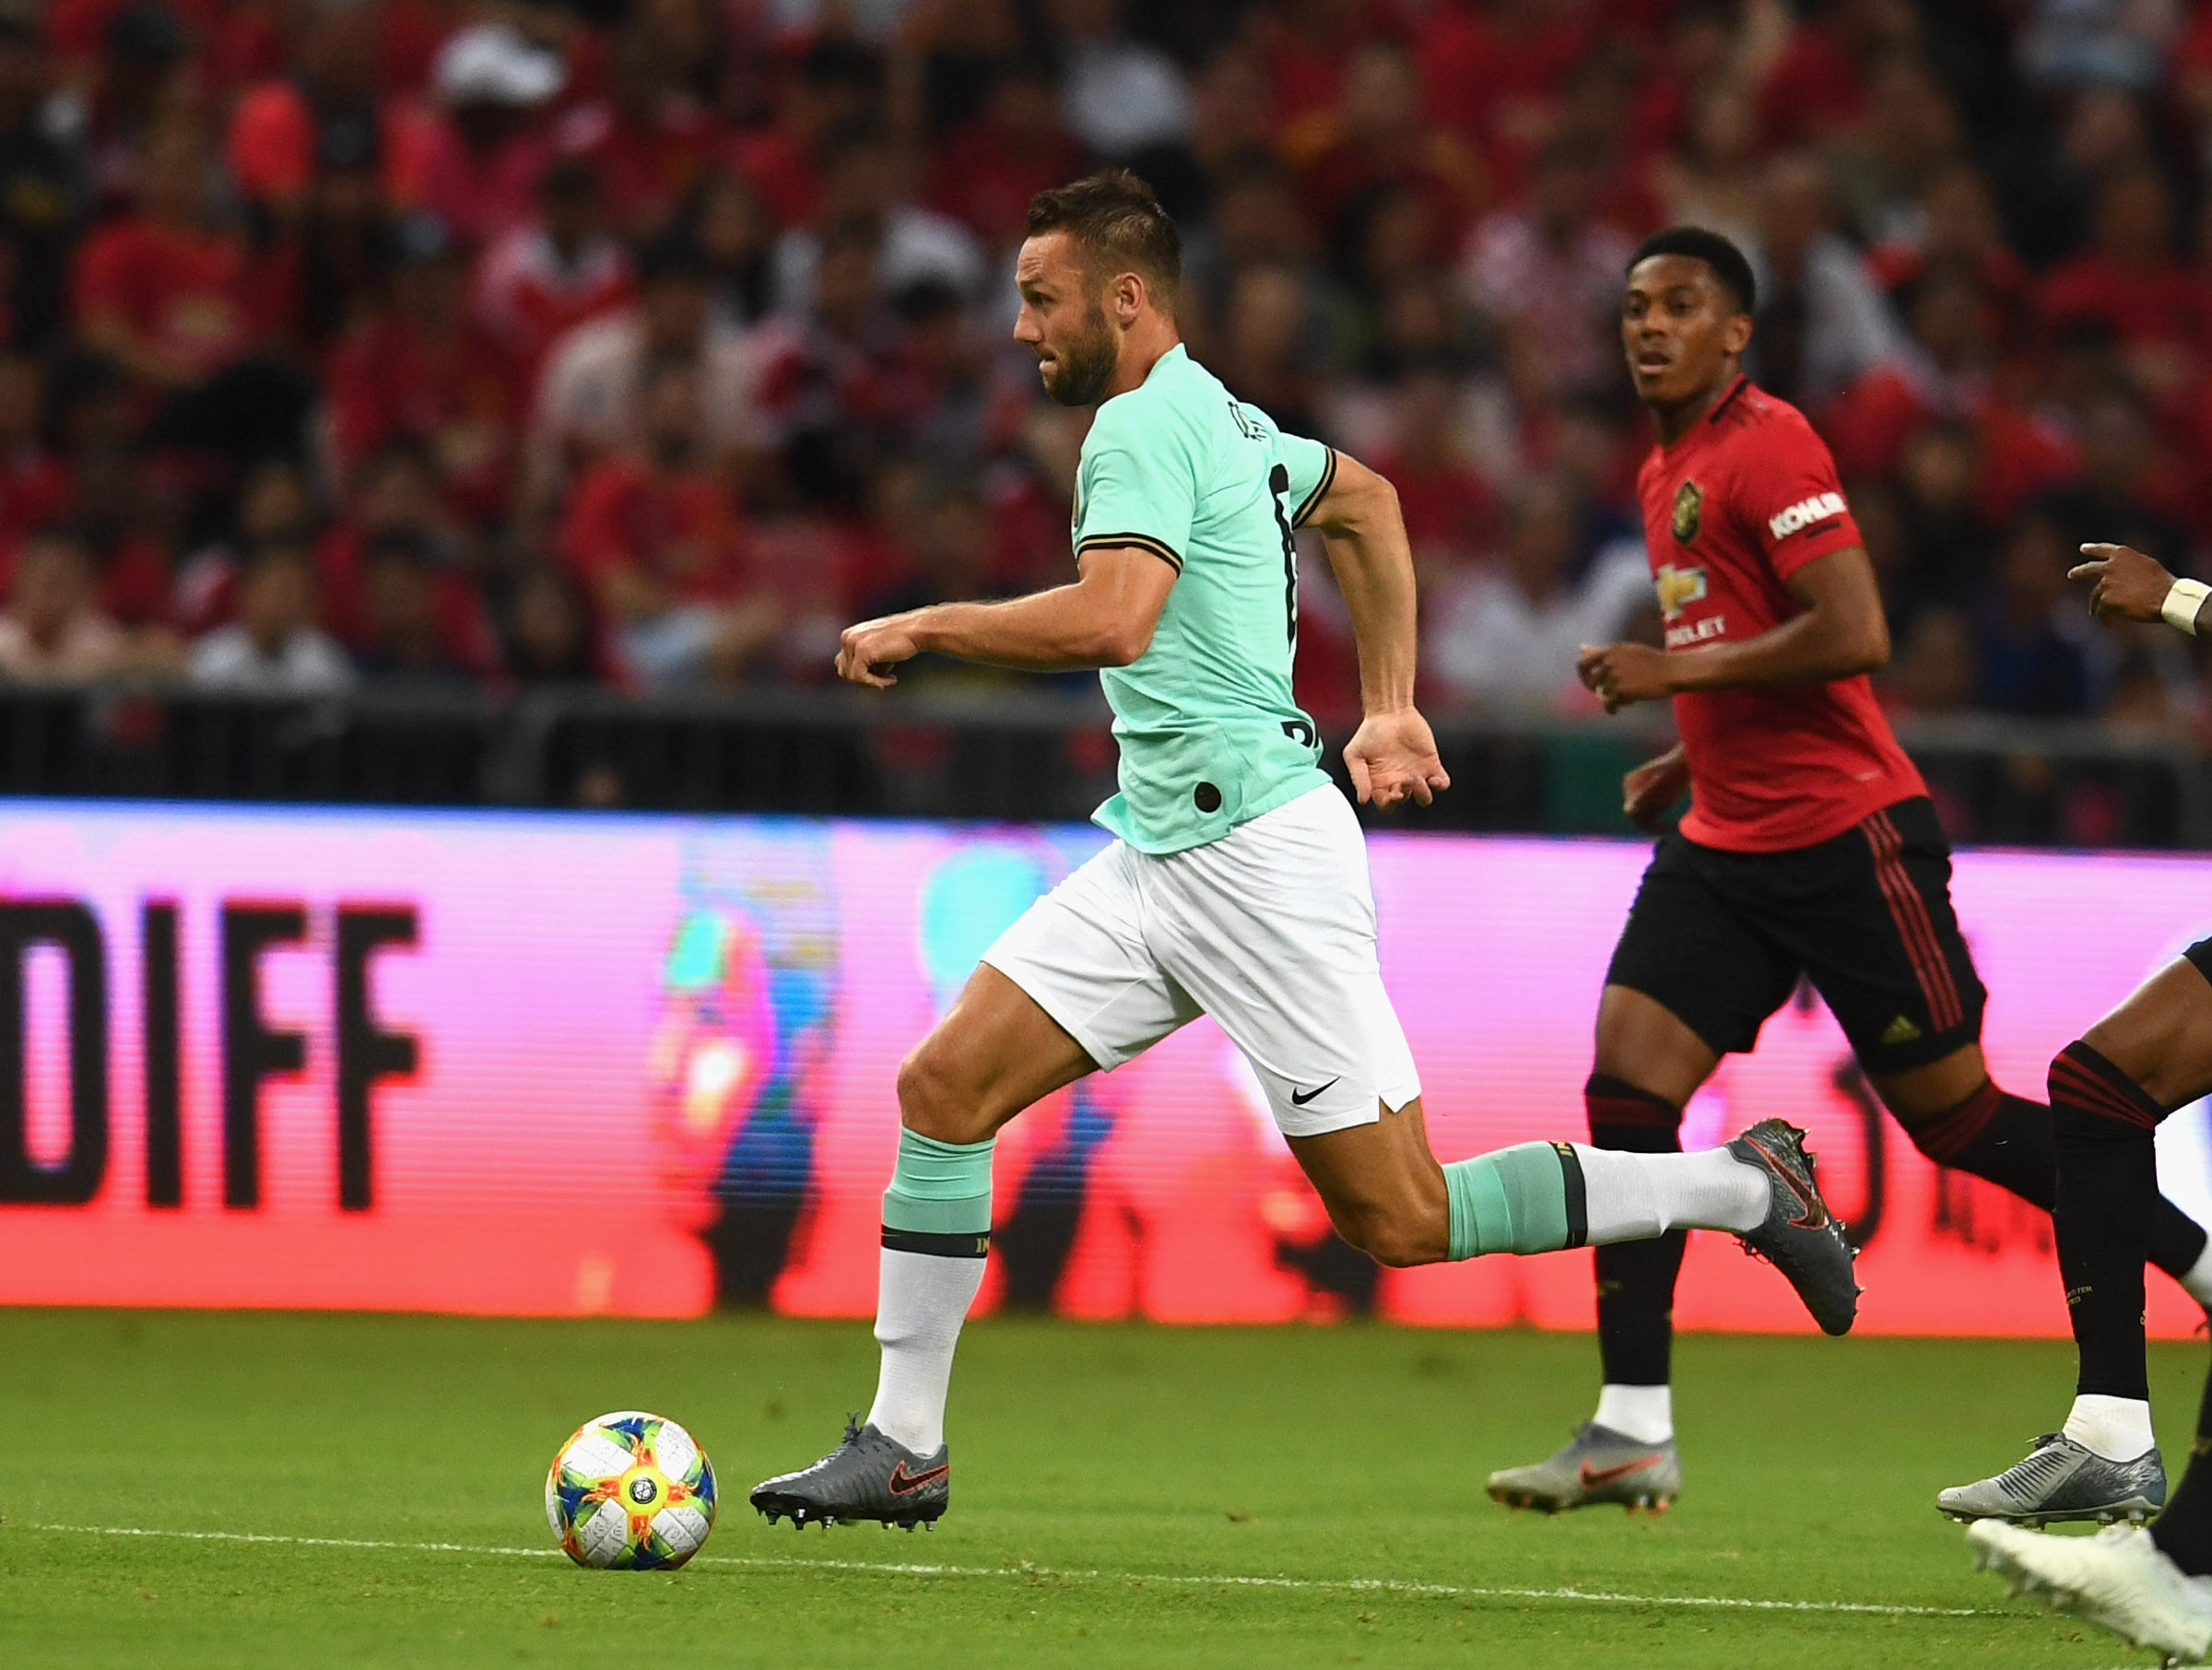 ICC 2019, semua foto Manchester United vs. Inter